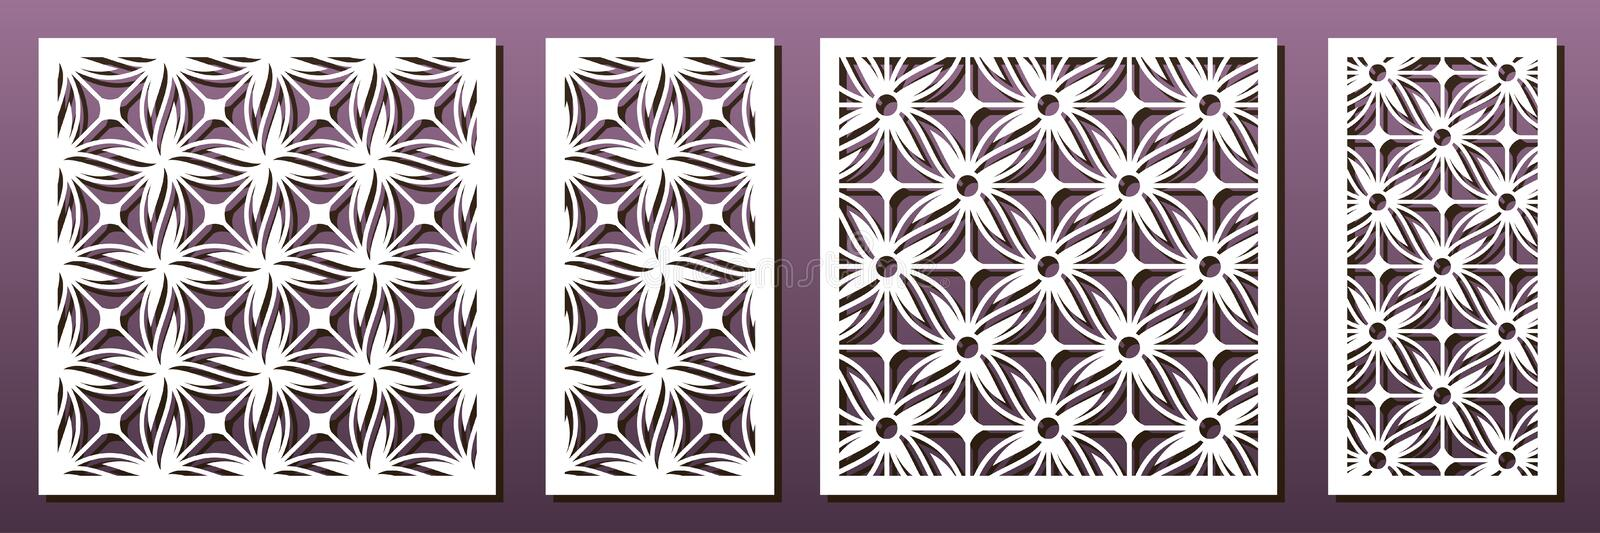 Laser cut pamels template, vector set. Abstract geometric pattern. Stencils, die for metal cutting, paper art, fretwork, wood vector illustration